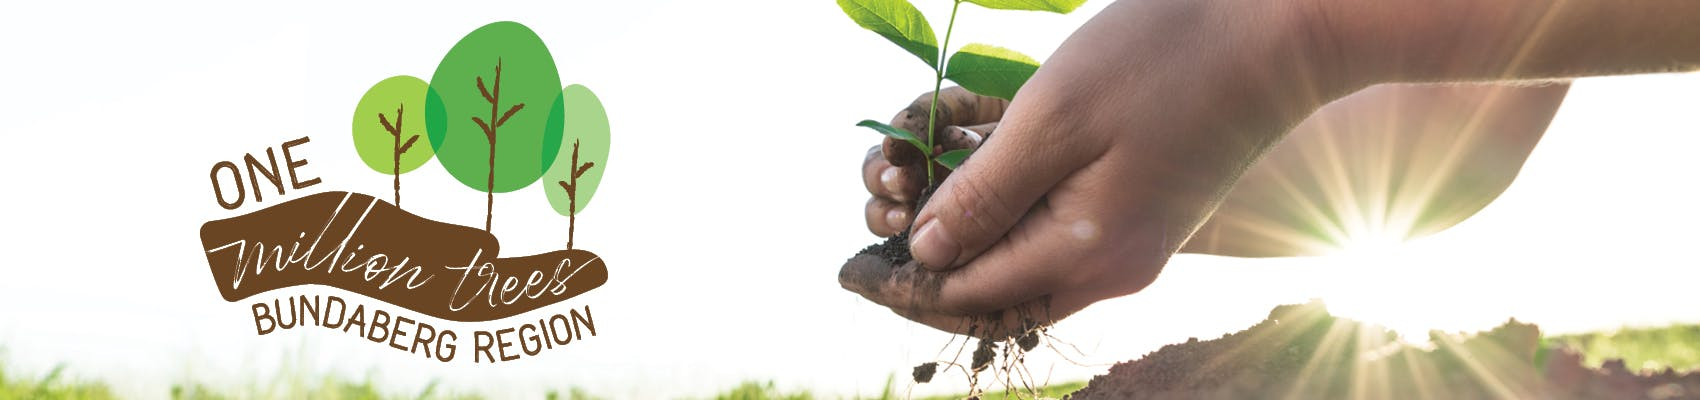 Bundaberg Regional Council has a vision of planting one million thriving trees in the Bundaberg region by 2024